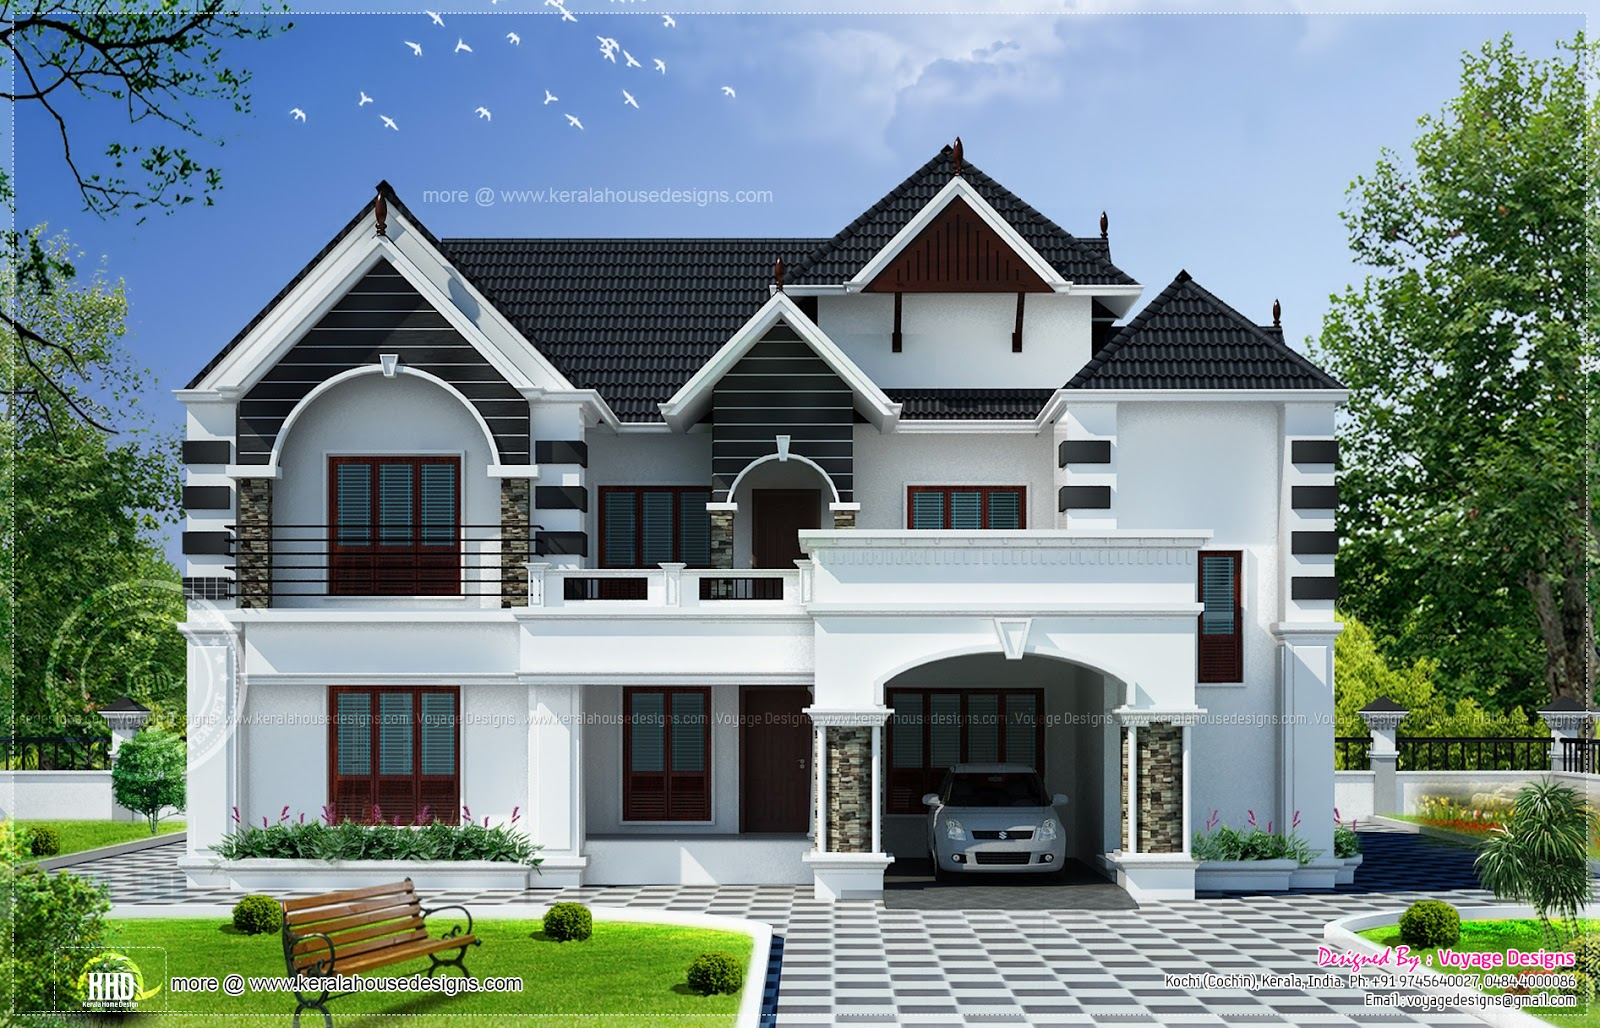 4 bedroom colonial style house kerala home design and Styles of houses